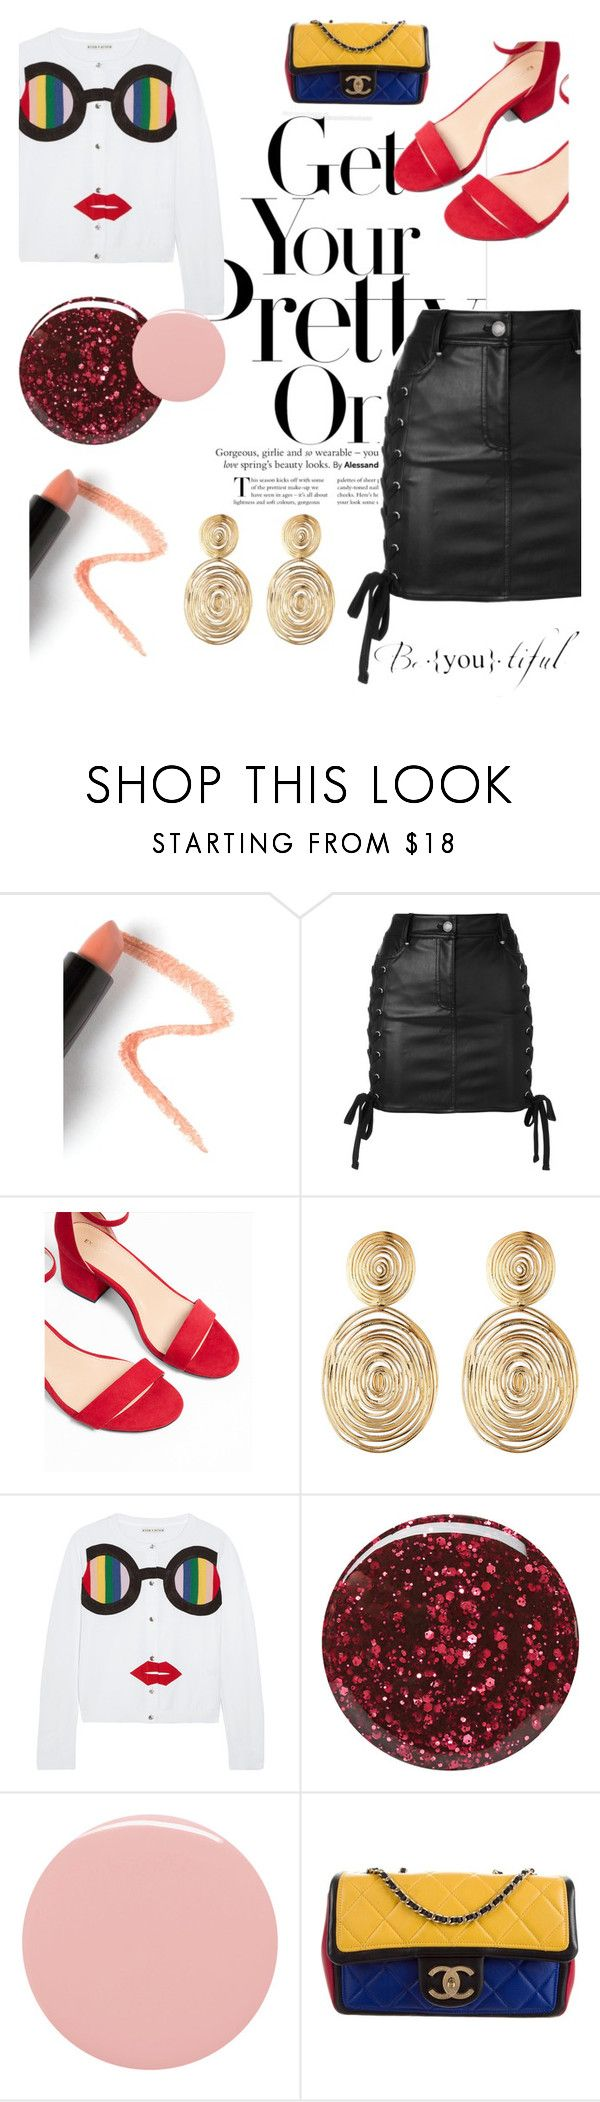 """""""Be [YOU] tiful"""" by sugarcanepop ❤ liked on Polyvore featuring Lapcos, Versus, Express, Gas Bijoux, Alice + Olivia, Burberry, Lauren B. Beauty and Chanel"""